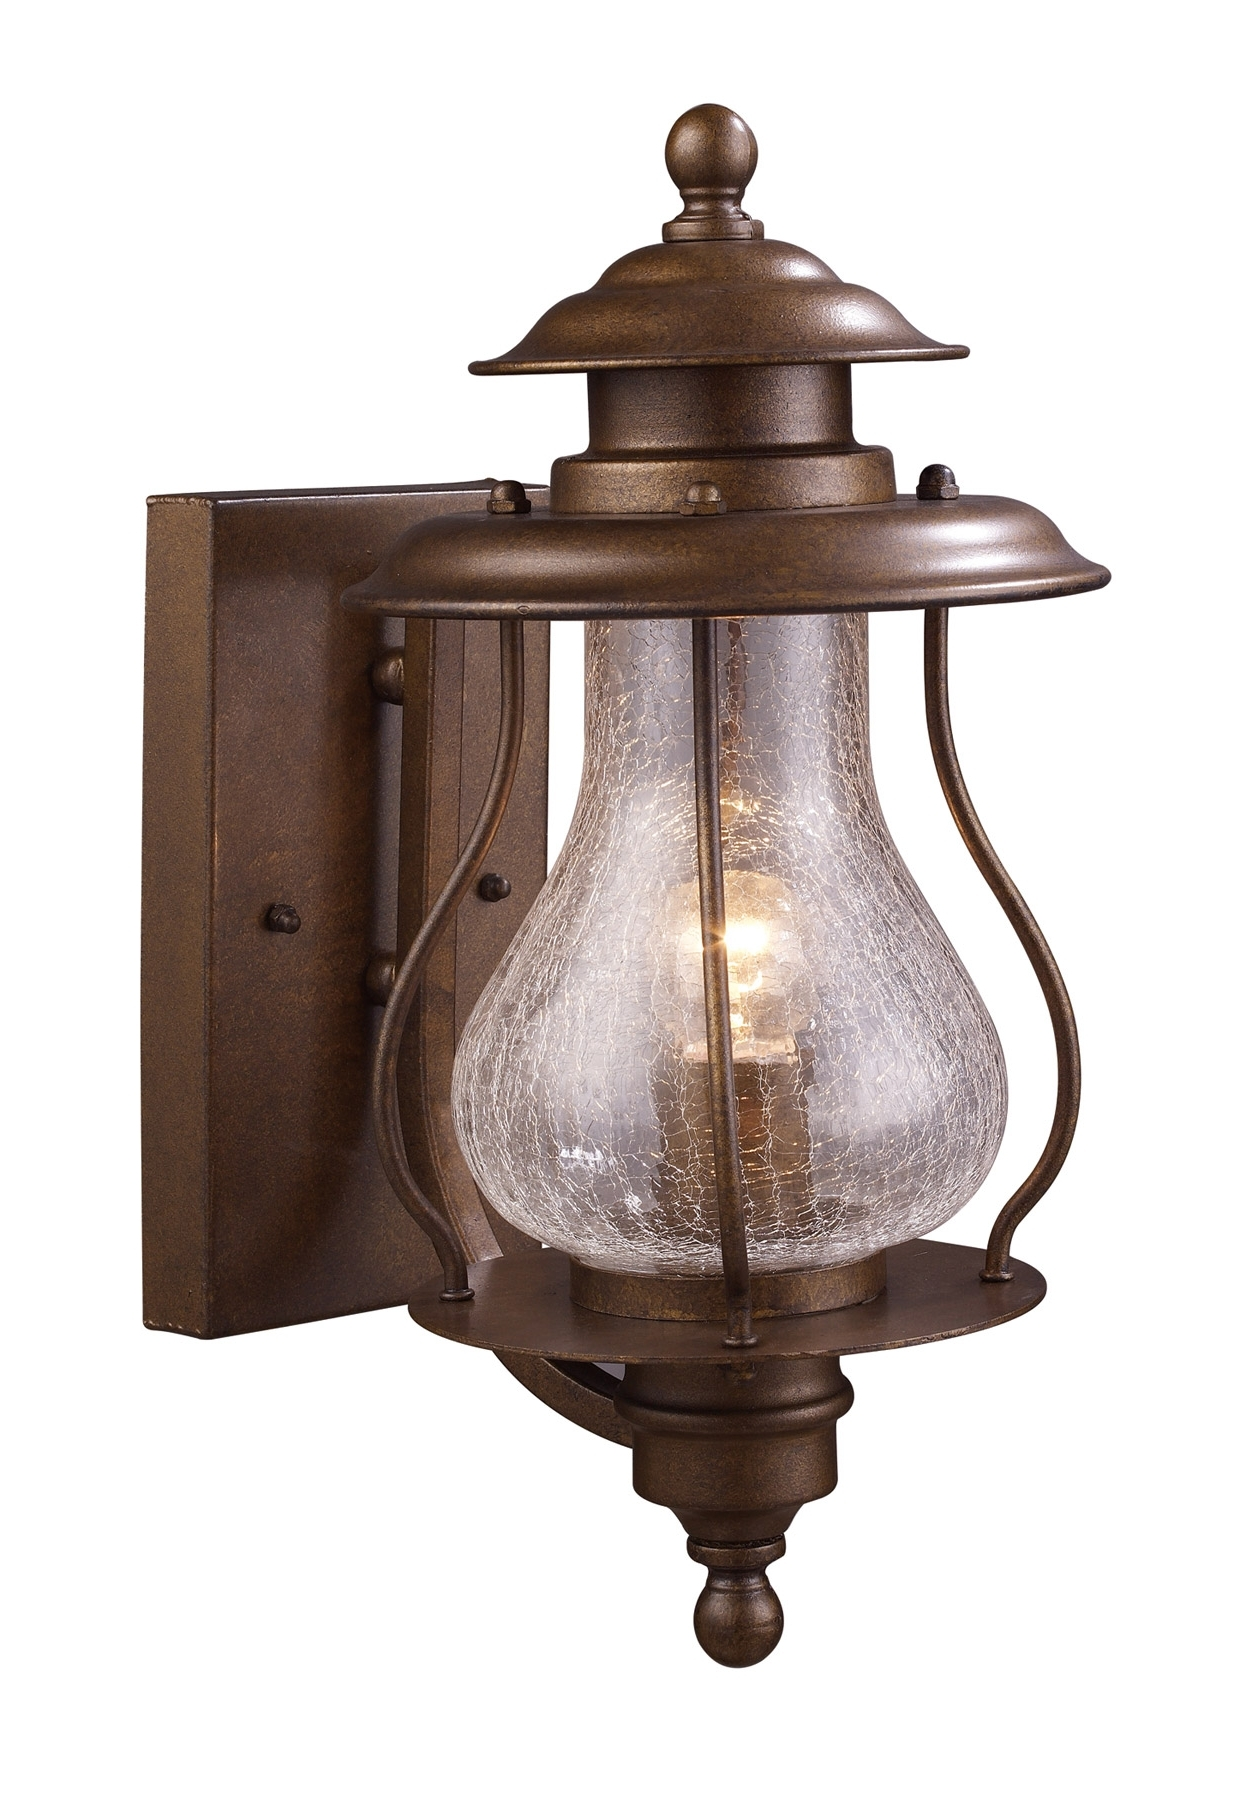 Favorite Outdoor Wall Lighting With Motion Activated Intended For Large Antique Galvanized Outdoor Wall Mounted Sconce Lighting With (View 9 of 20)